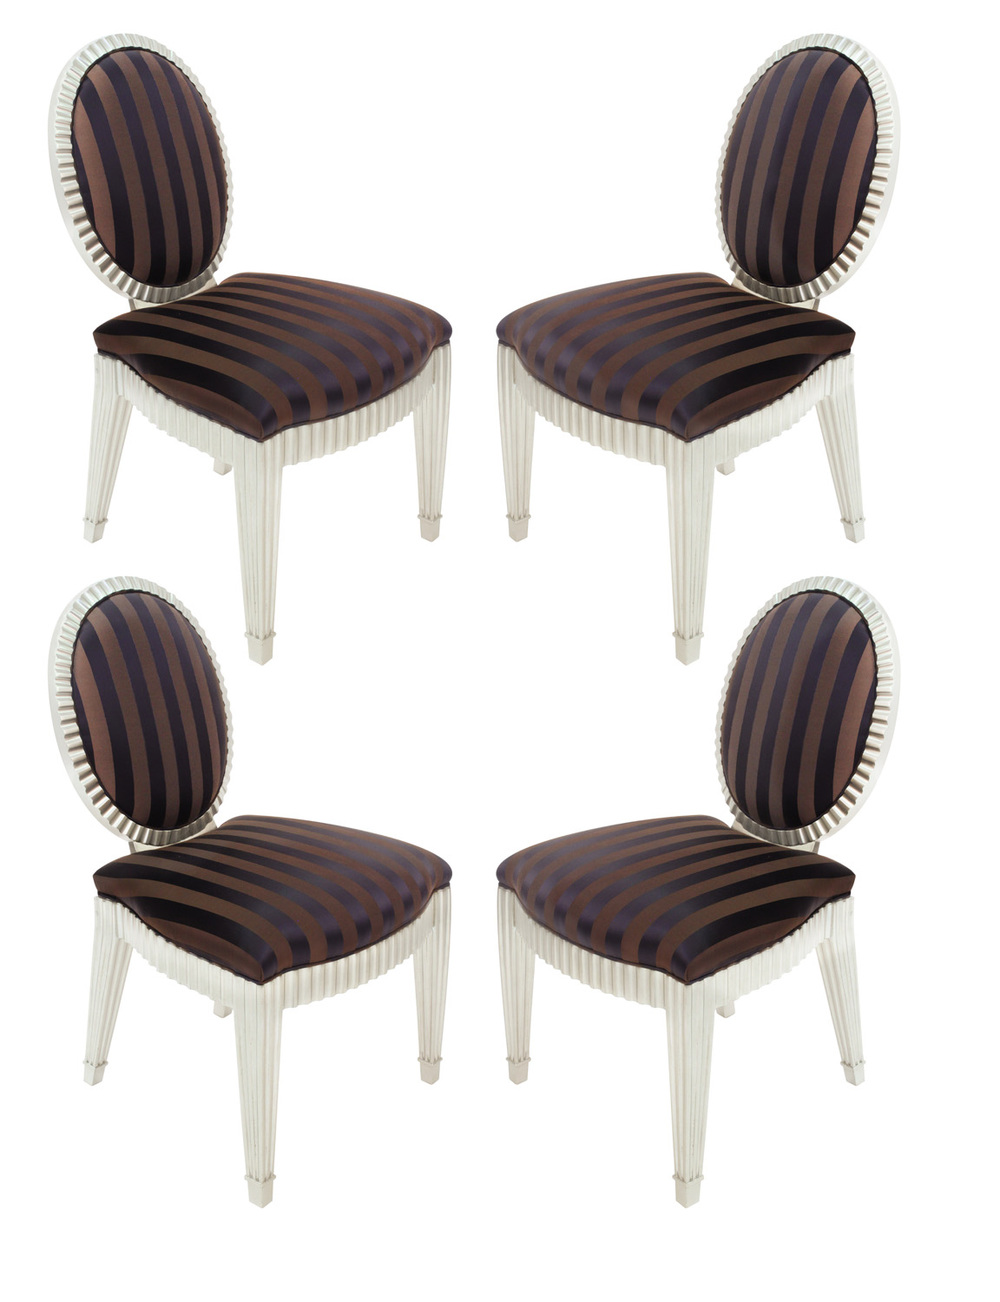 Donghia 120 set4 silver channeld diningchairs156 hires.jpg